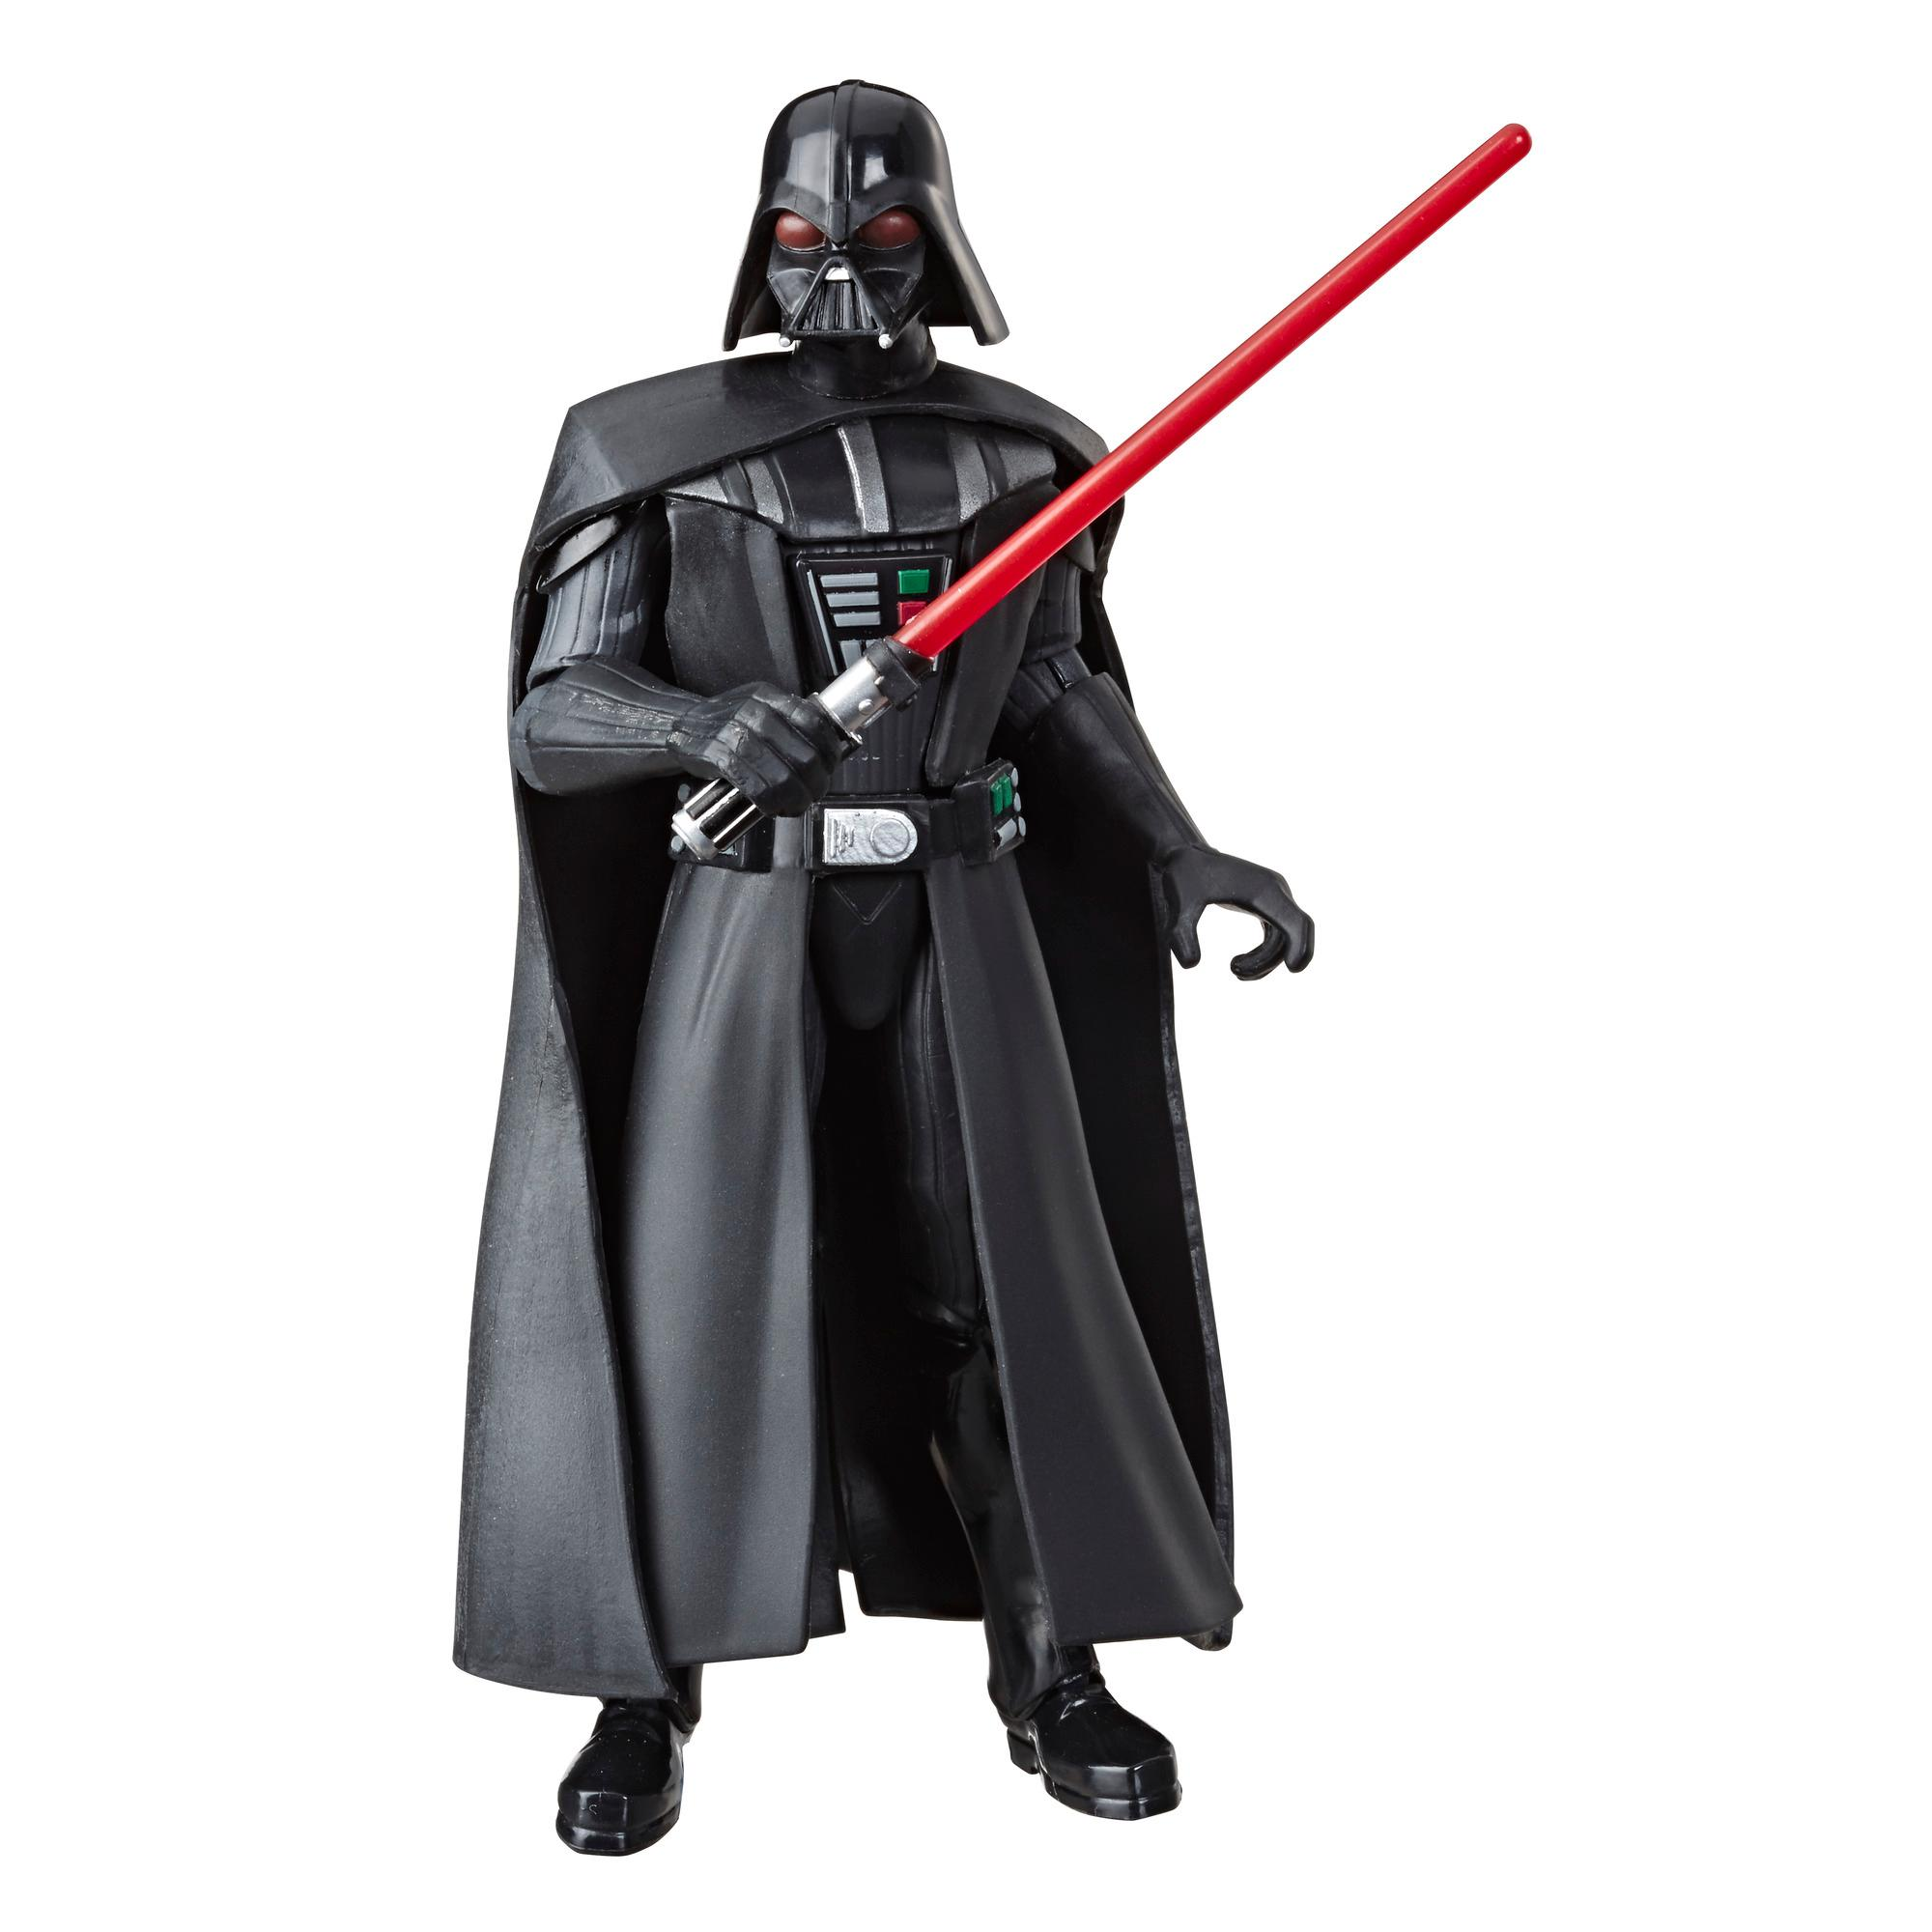 Star Wars|Star Wars Galaxy of Adventures Darth Vader 5-Inch-Scale Action  Figure Toy